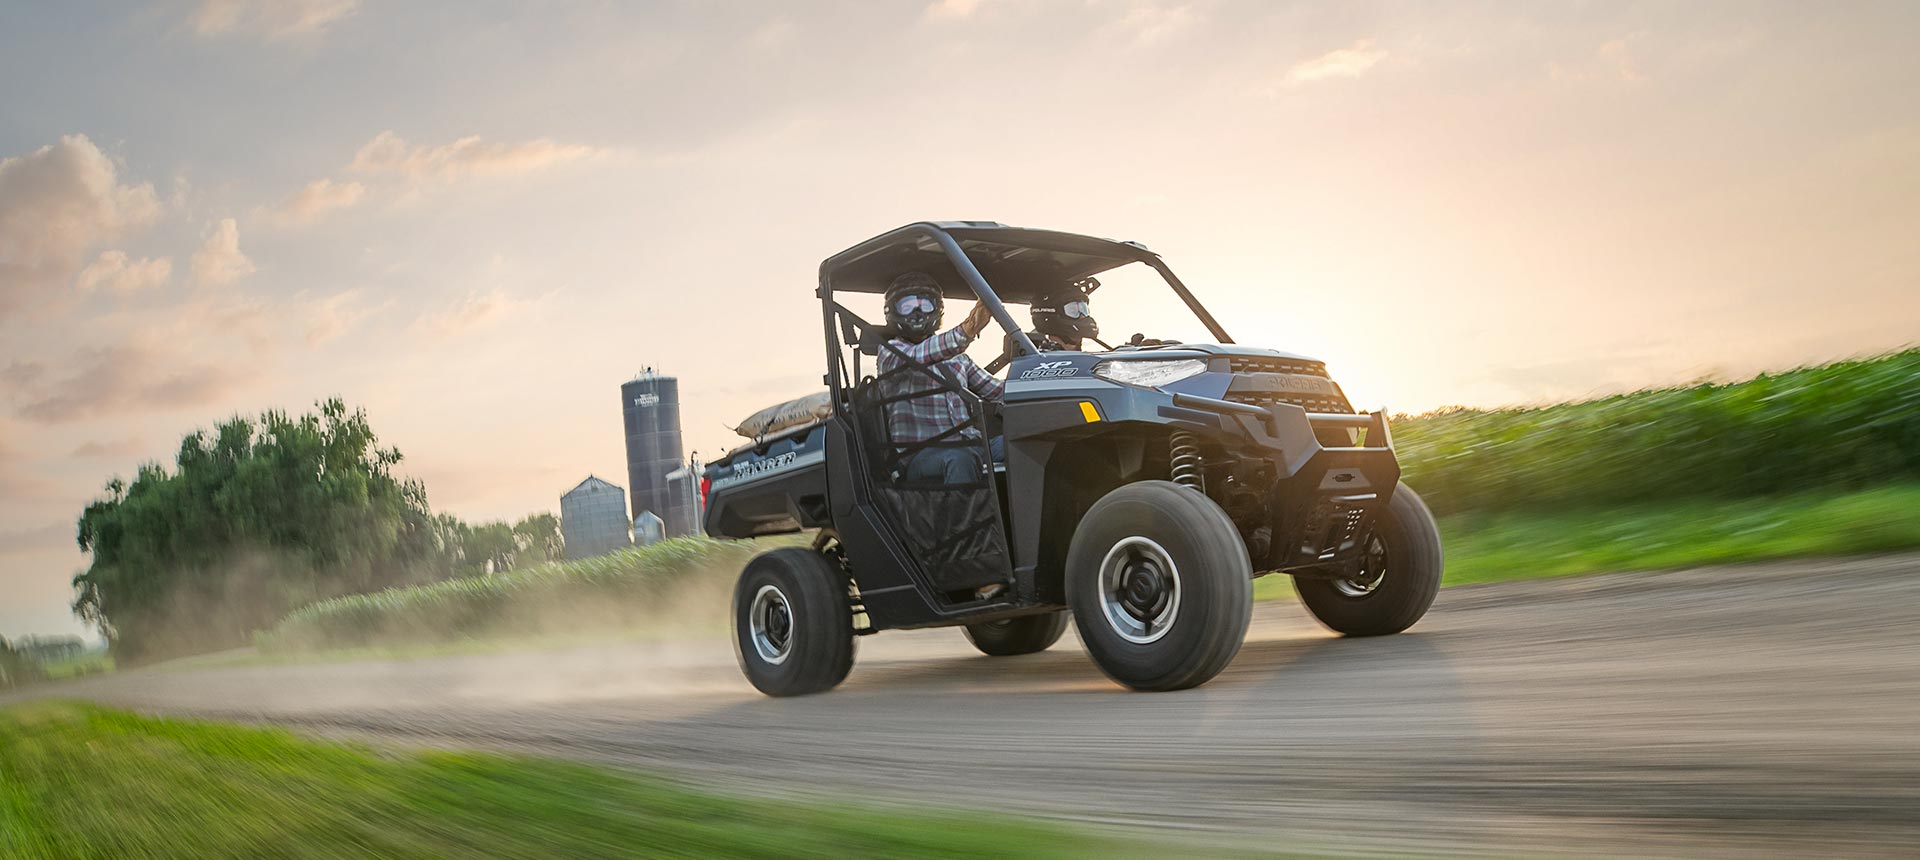 2019 Polaris Ranger XP 1000 EPS in Conroe, Texas - Photo 11